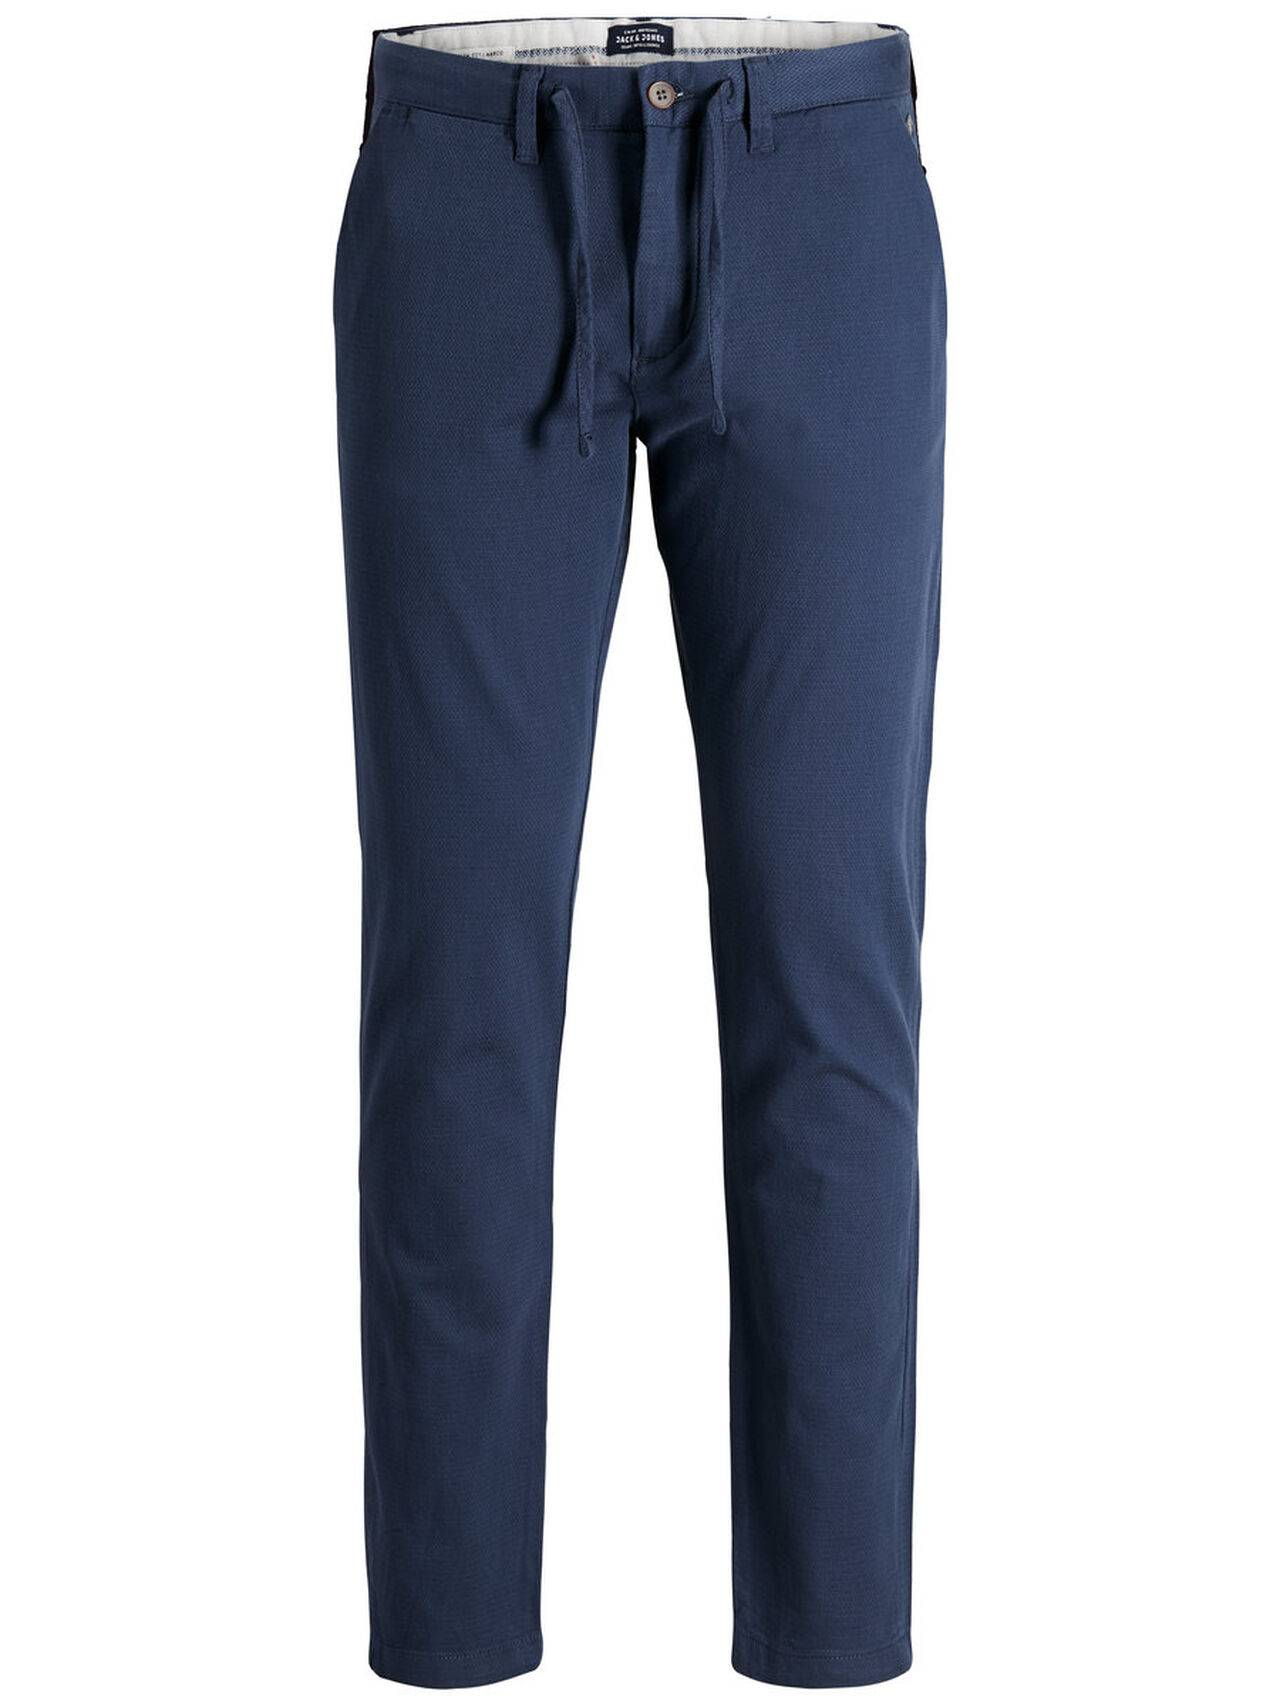 Jack & Jones Marco Cuba Akm 959 Chinos DarkBlue